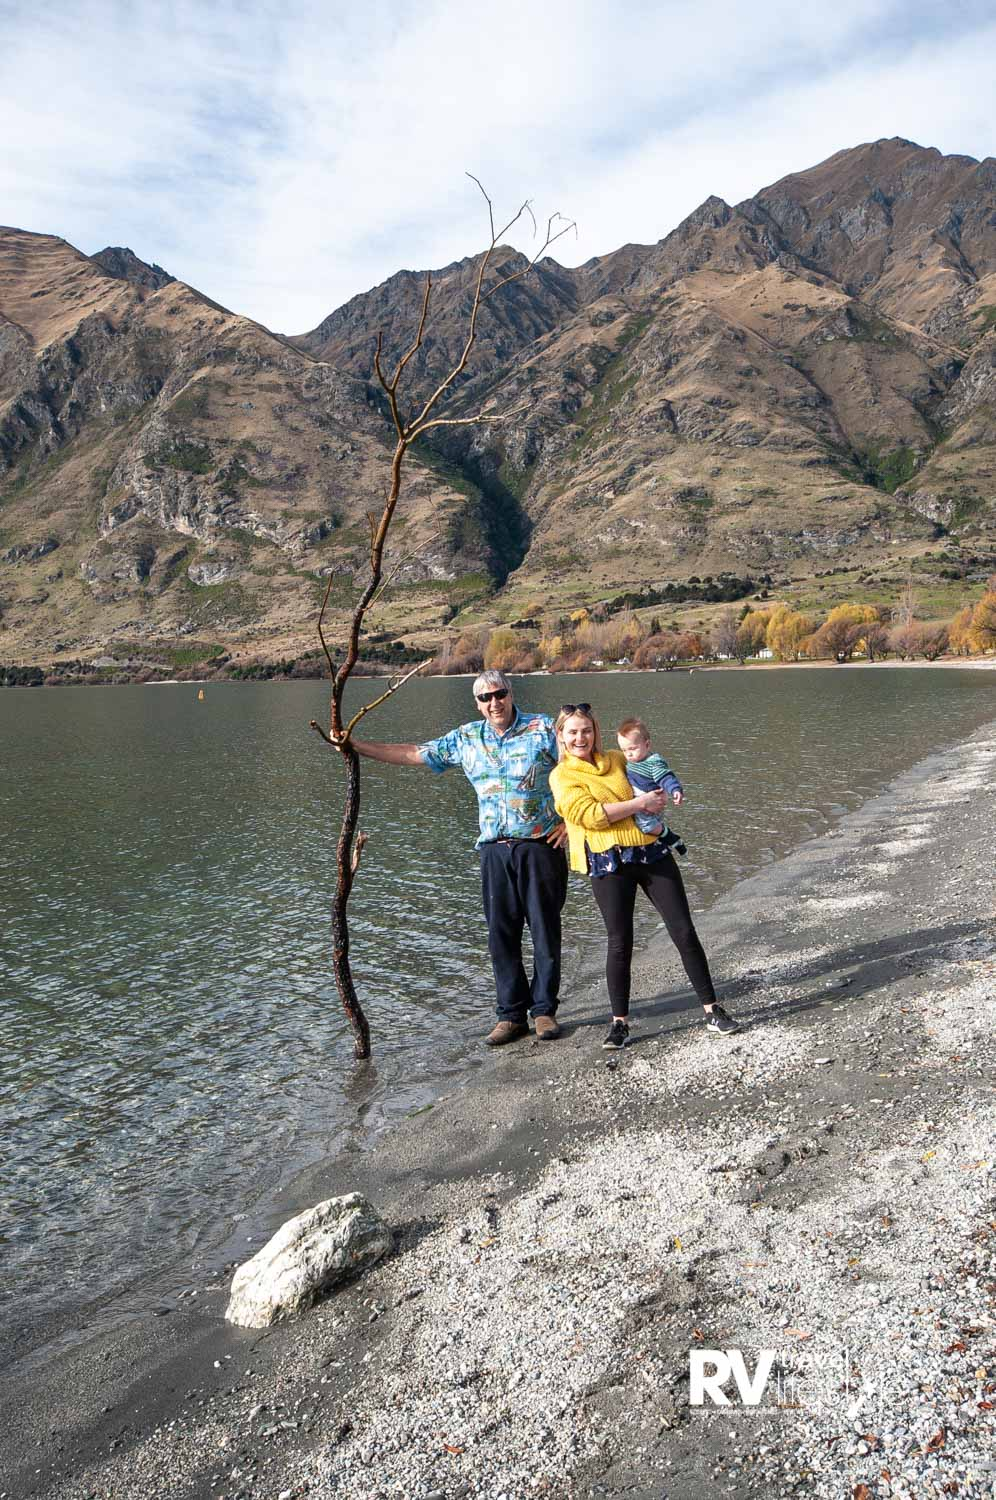 We found the Wanaka tree - we think lol